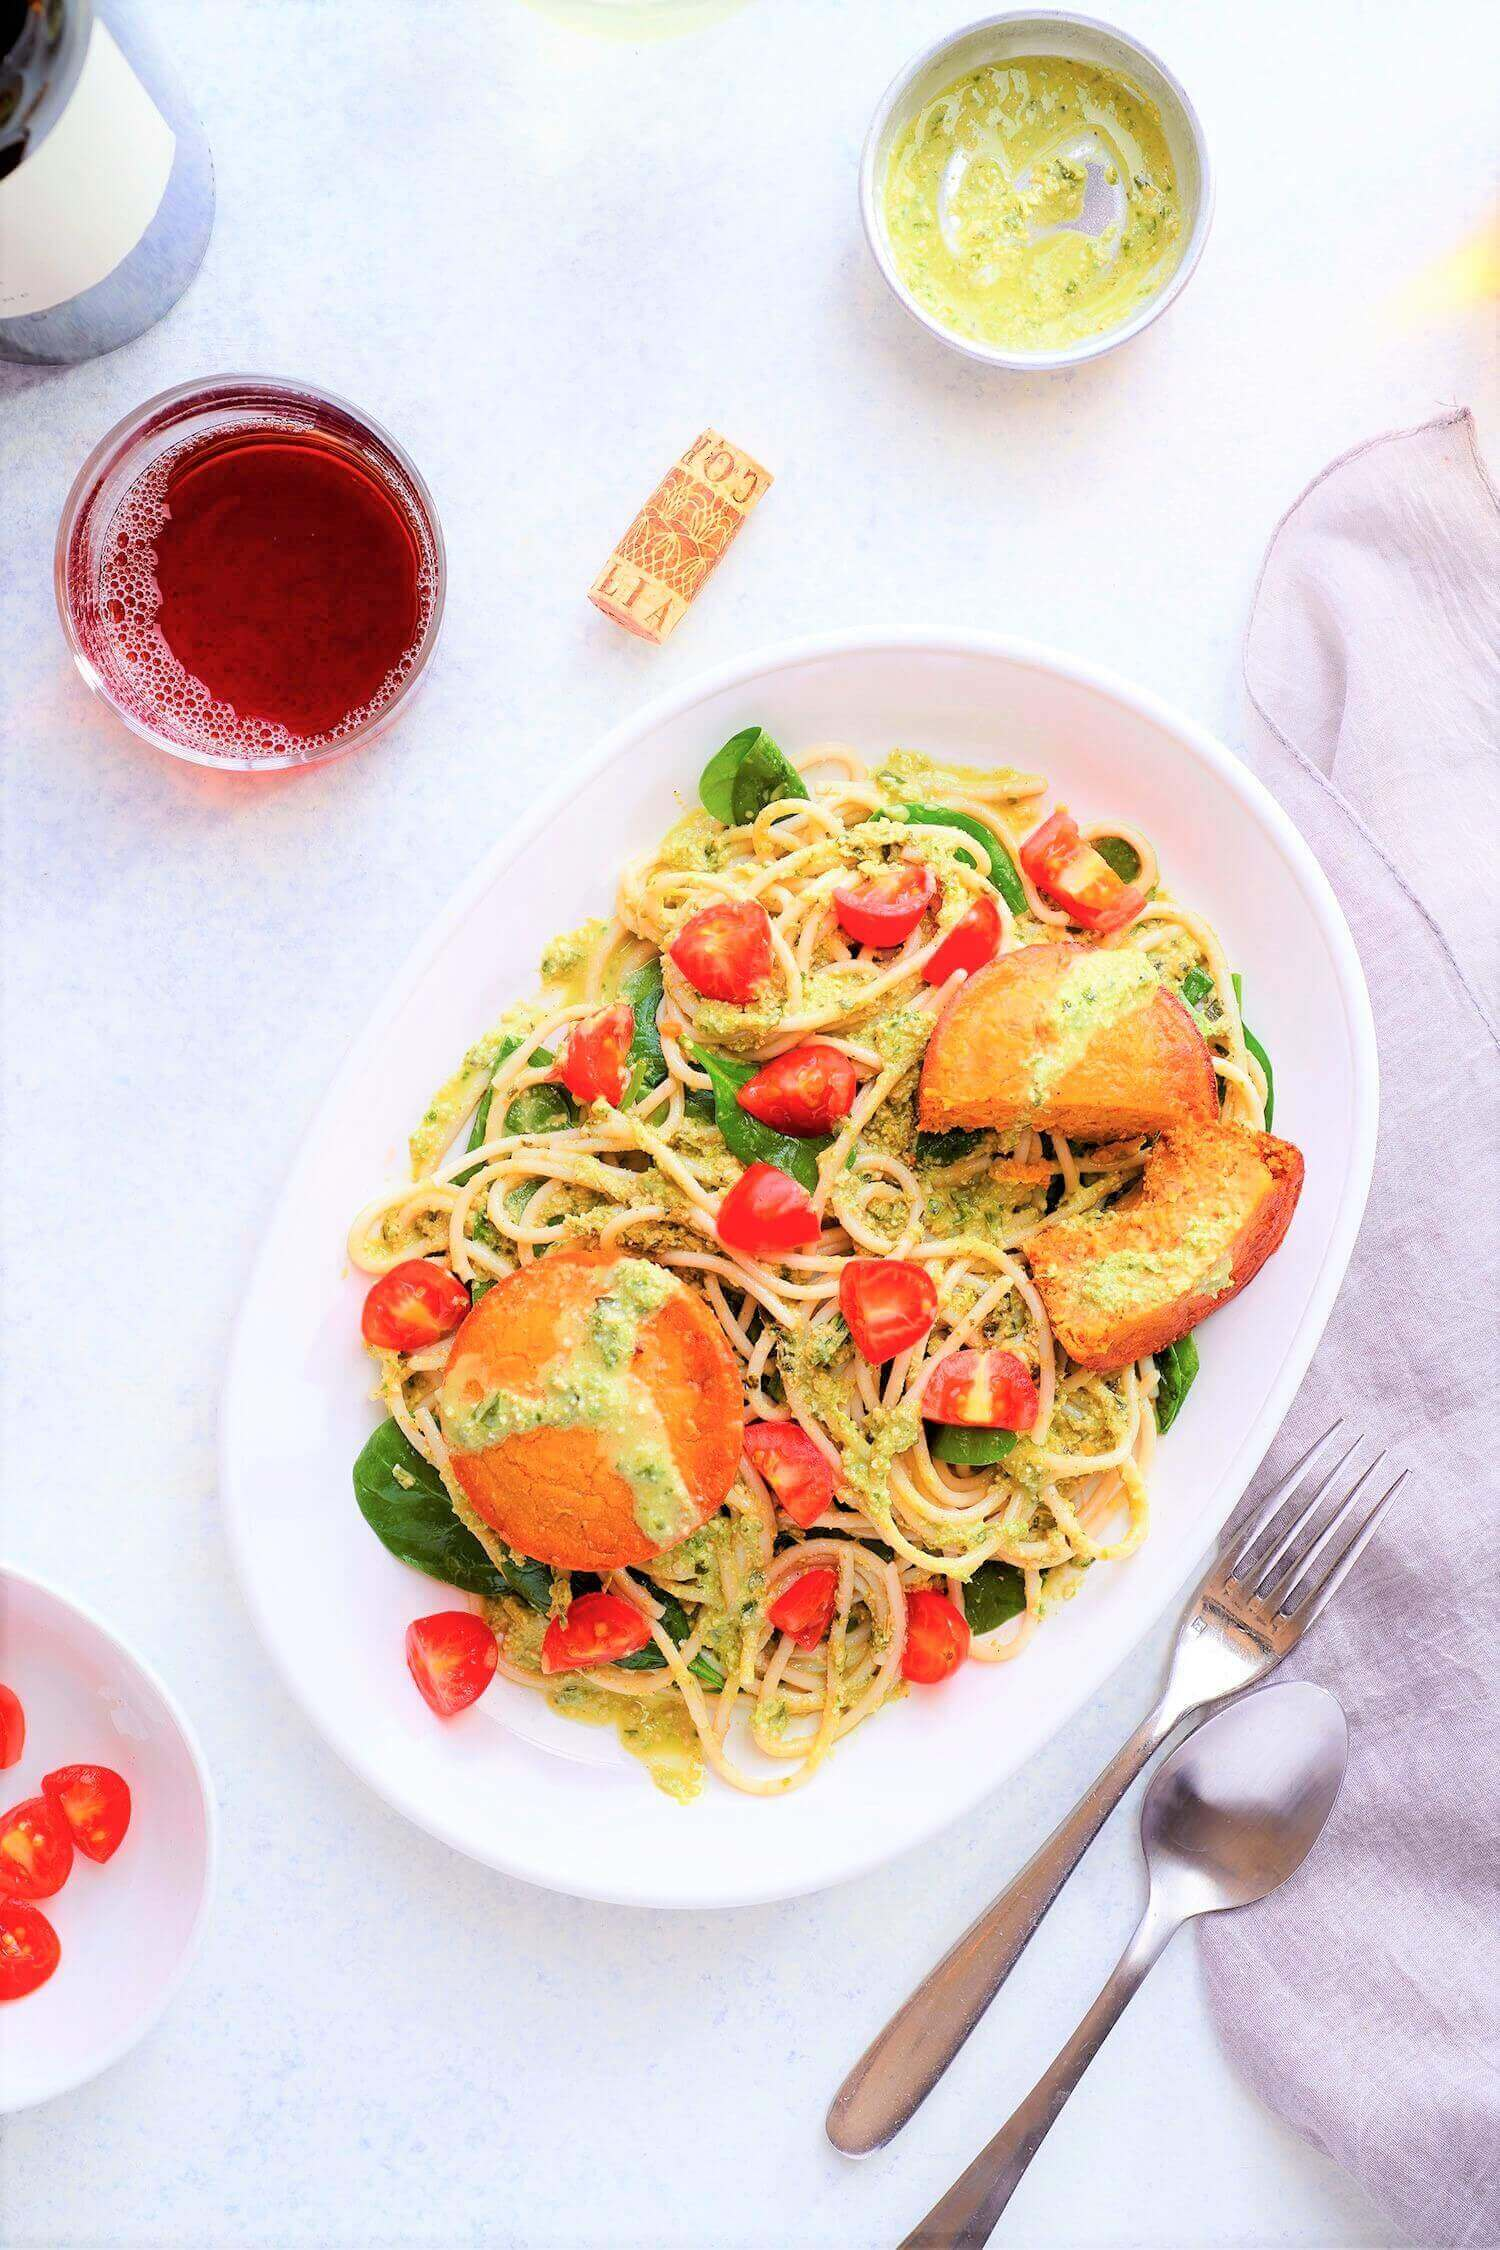 Pesto Pasta with Sun-dried Tomato Cakes